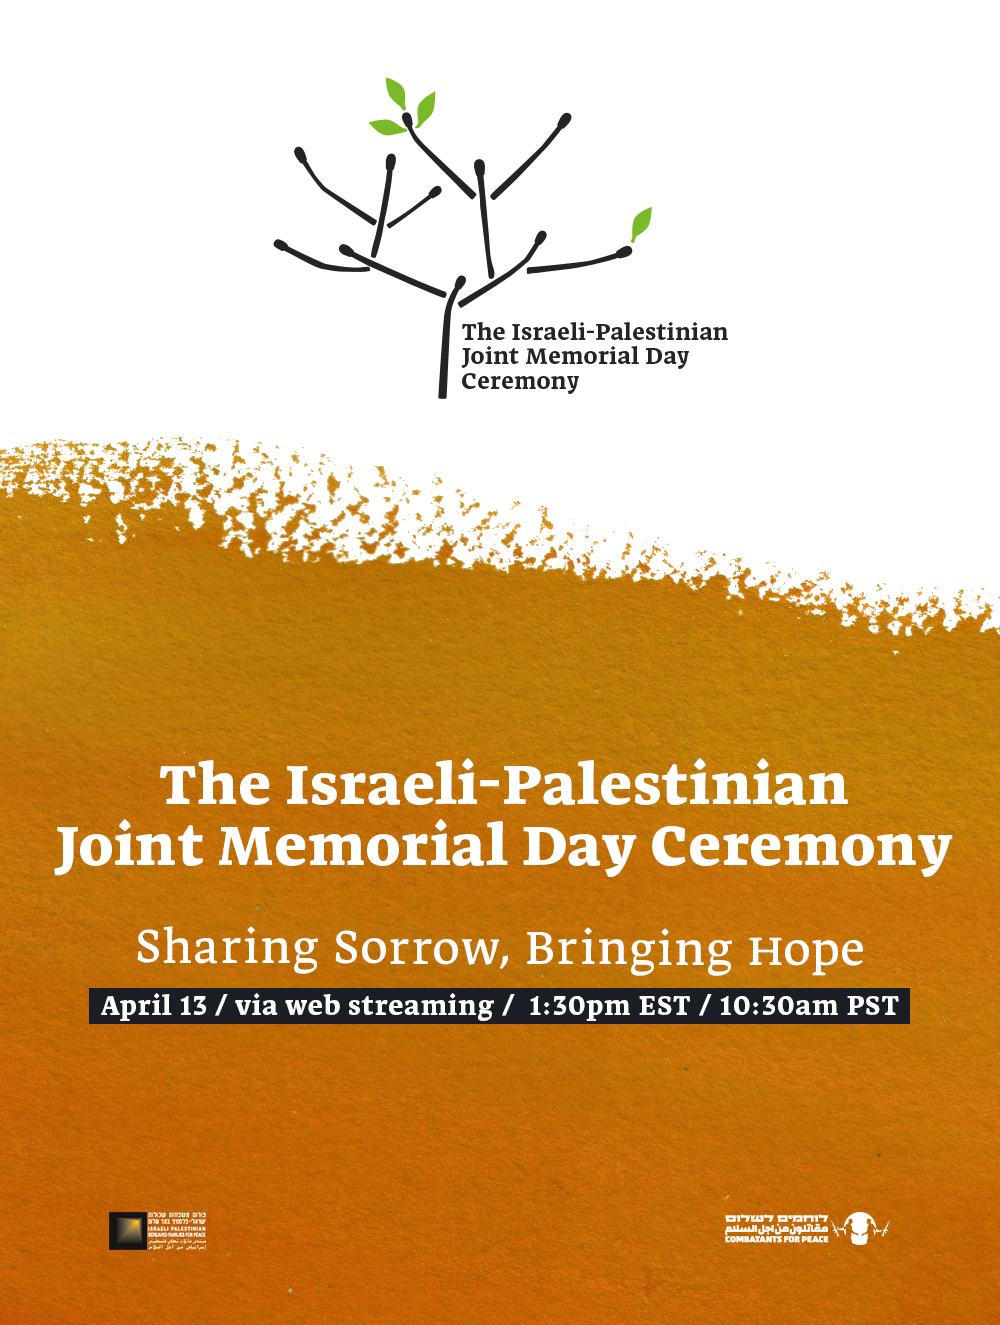 https://cfpeace.org/wp-content/uploads/2021/03/Official-poster-16th-Israeli-Palestinian-Memorial-Day-Ceremony.jpg